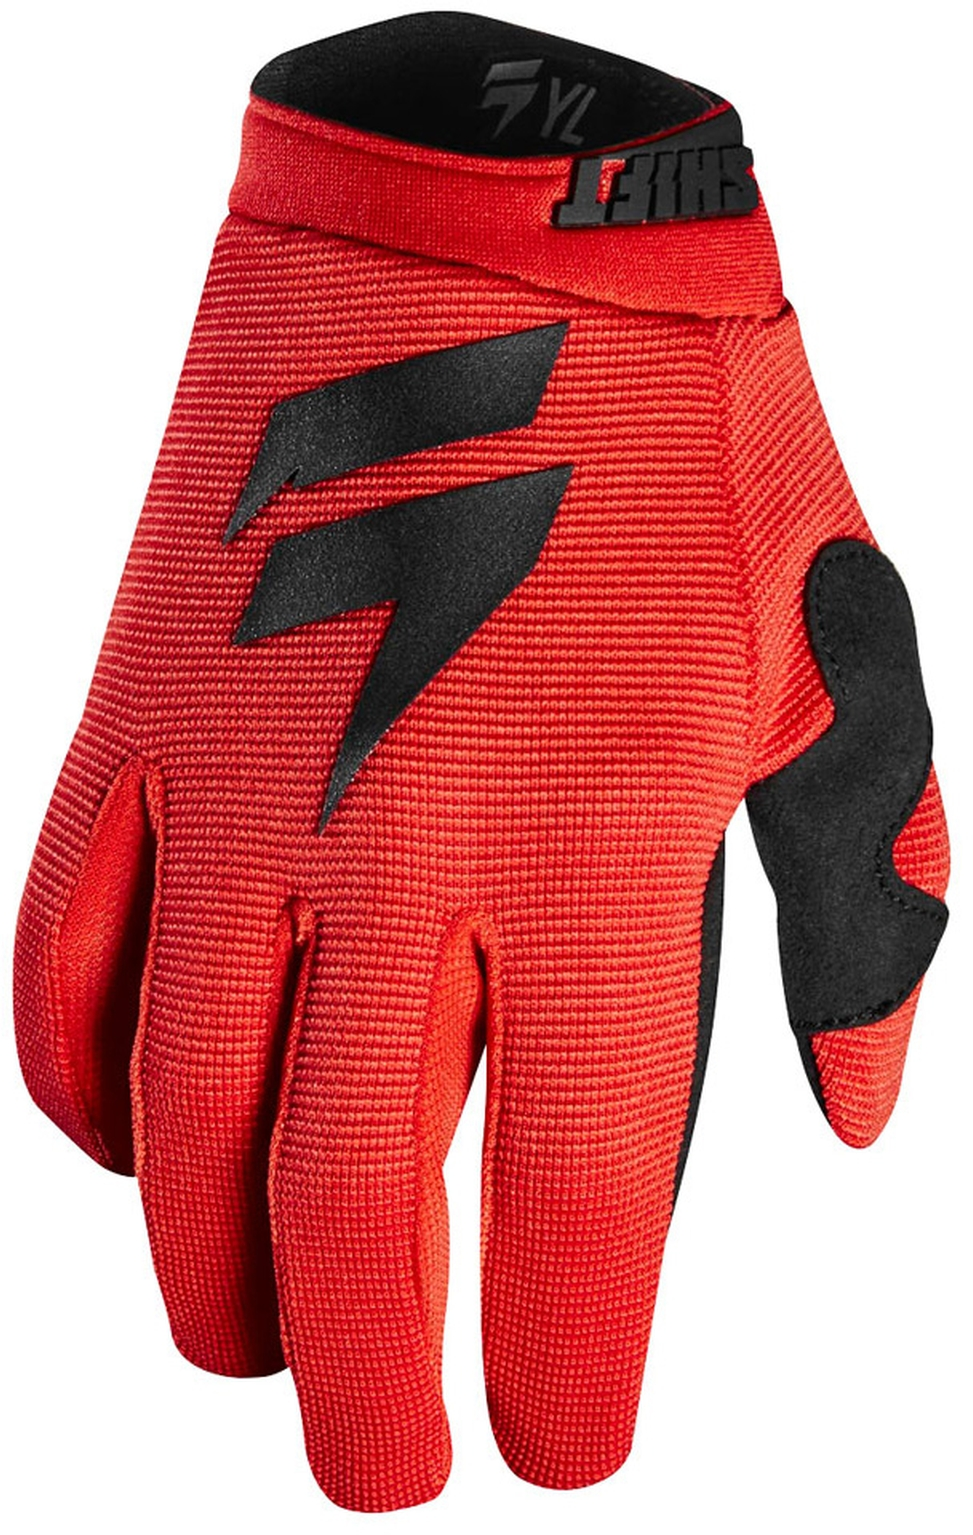 GUANTI BIMBO YOUTH WHIT3 AIR GLOVE